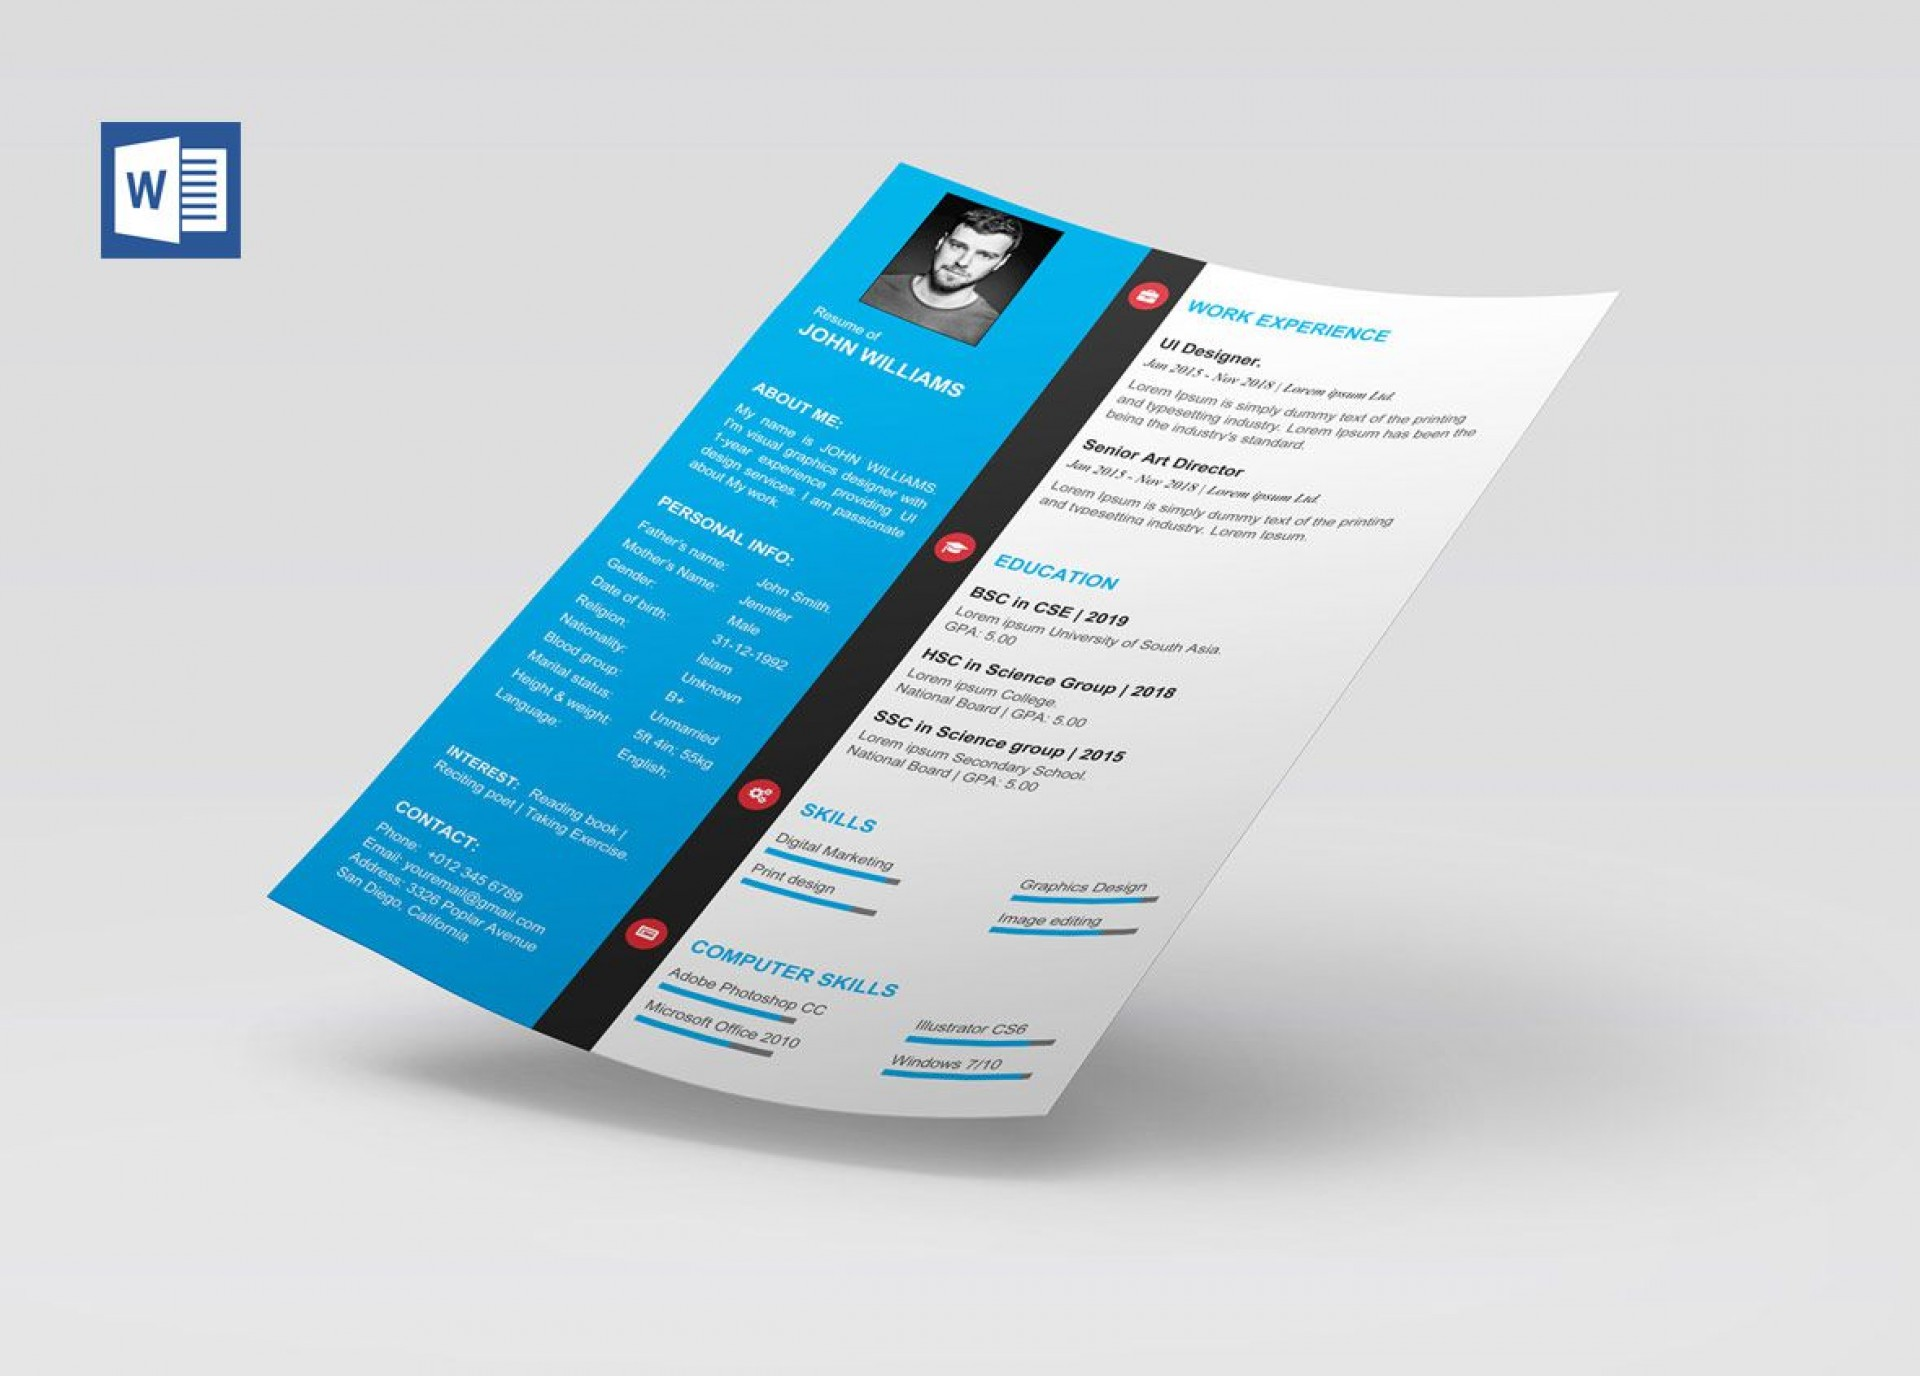 007 Impressive Resume Template Free Word Picture  Download Cv 2020 Format1920